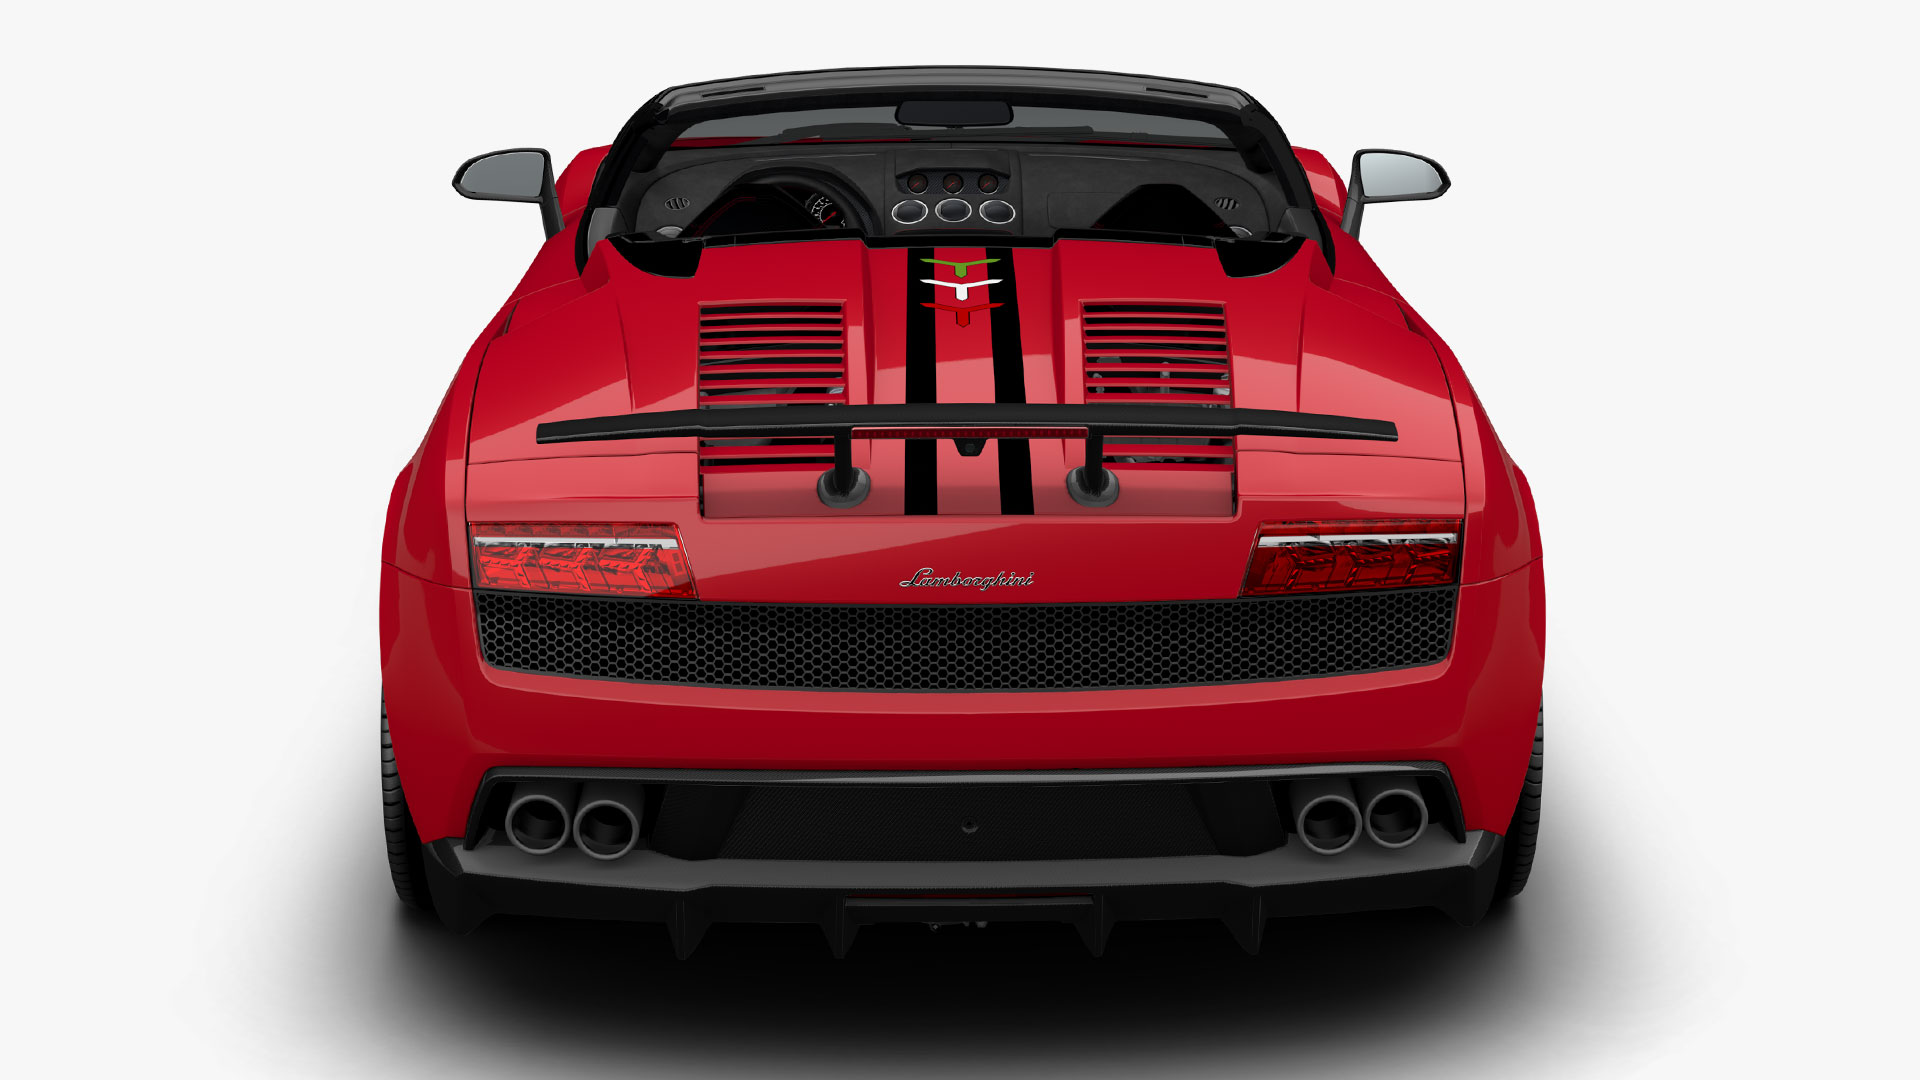 2014 Lamborghini Gallardo Lp 570 4 Performante Edizione Tecnica News